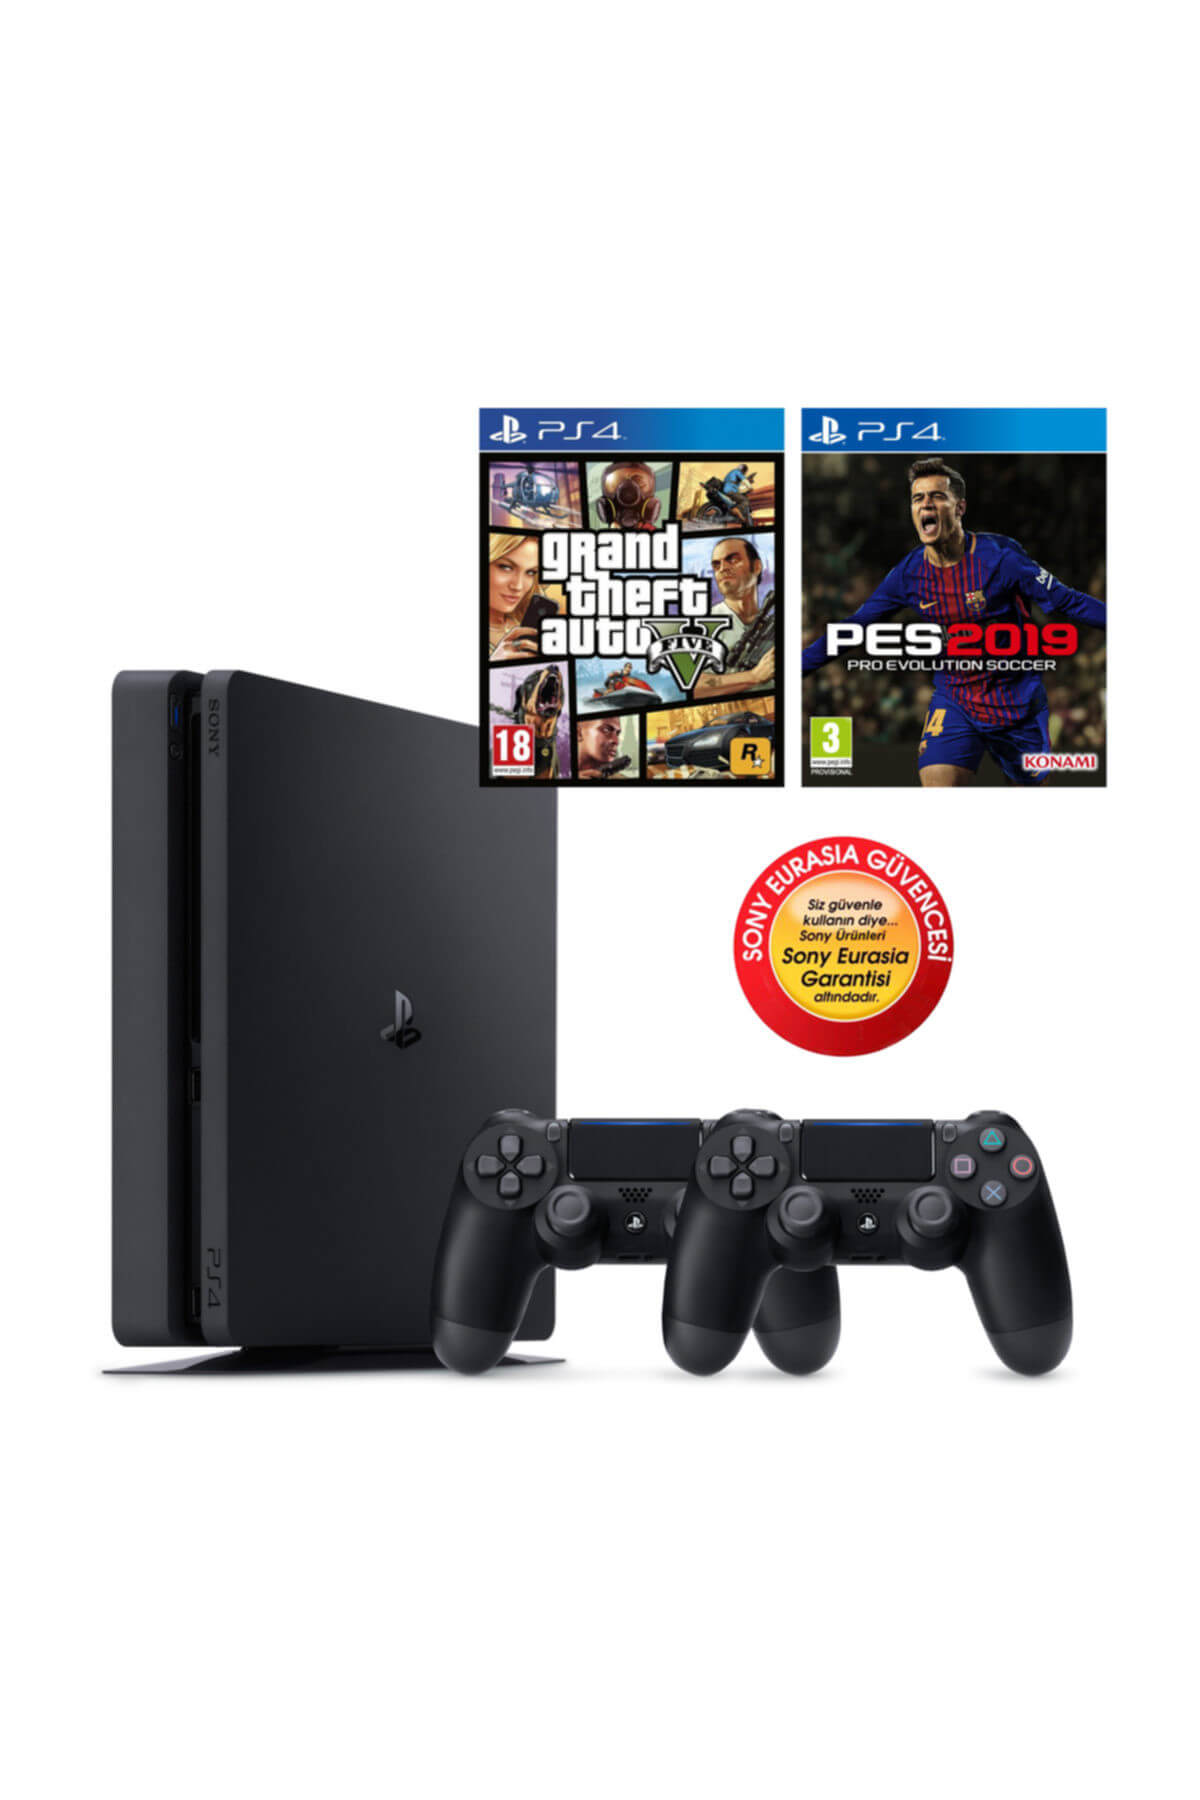 Sony Ps4 Slim 500gb Oyun Konsolu Eurasia Garantili + Ps4 Pes 19 Gta 5 2.